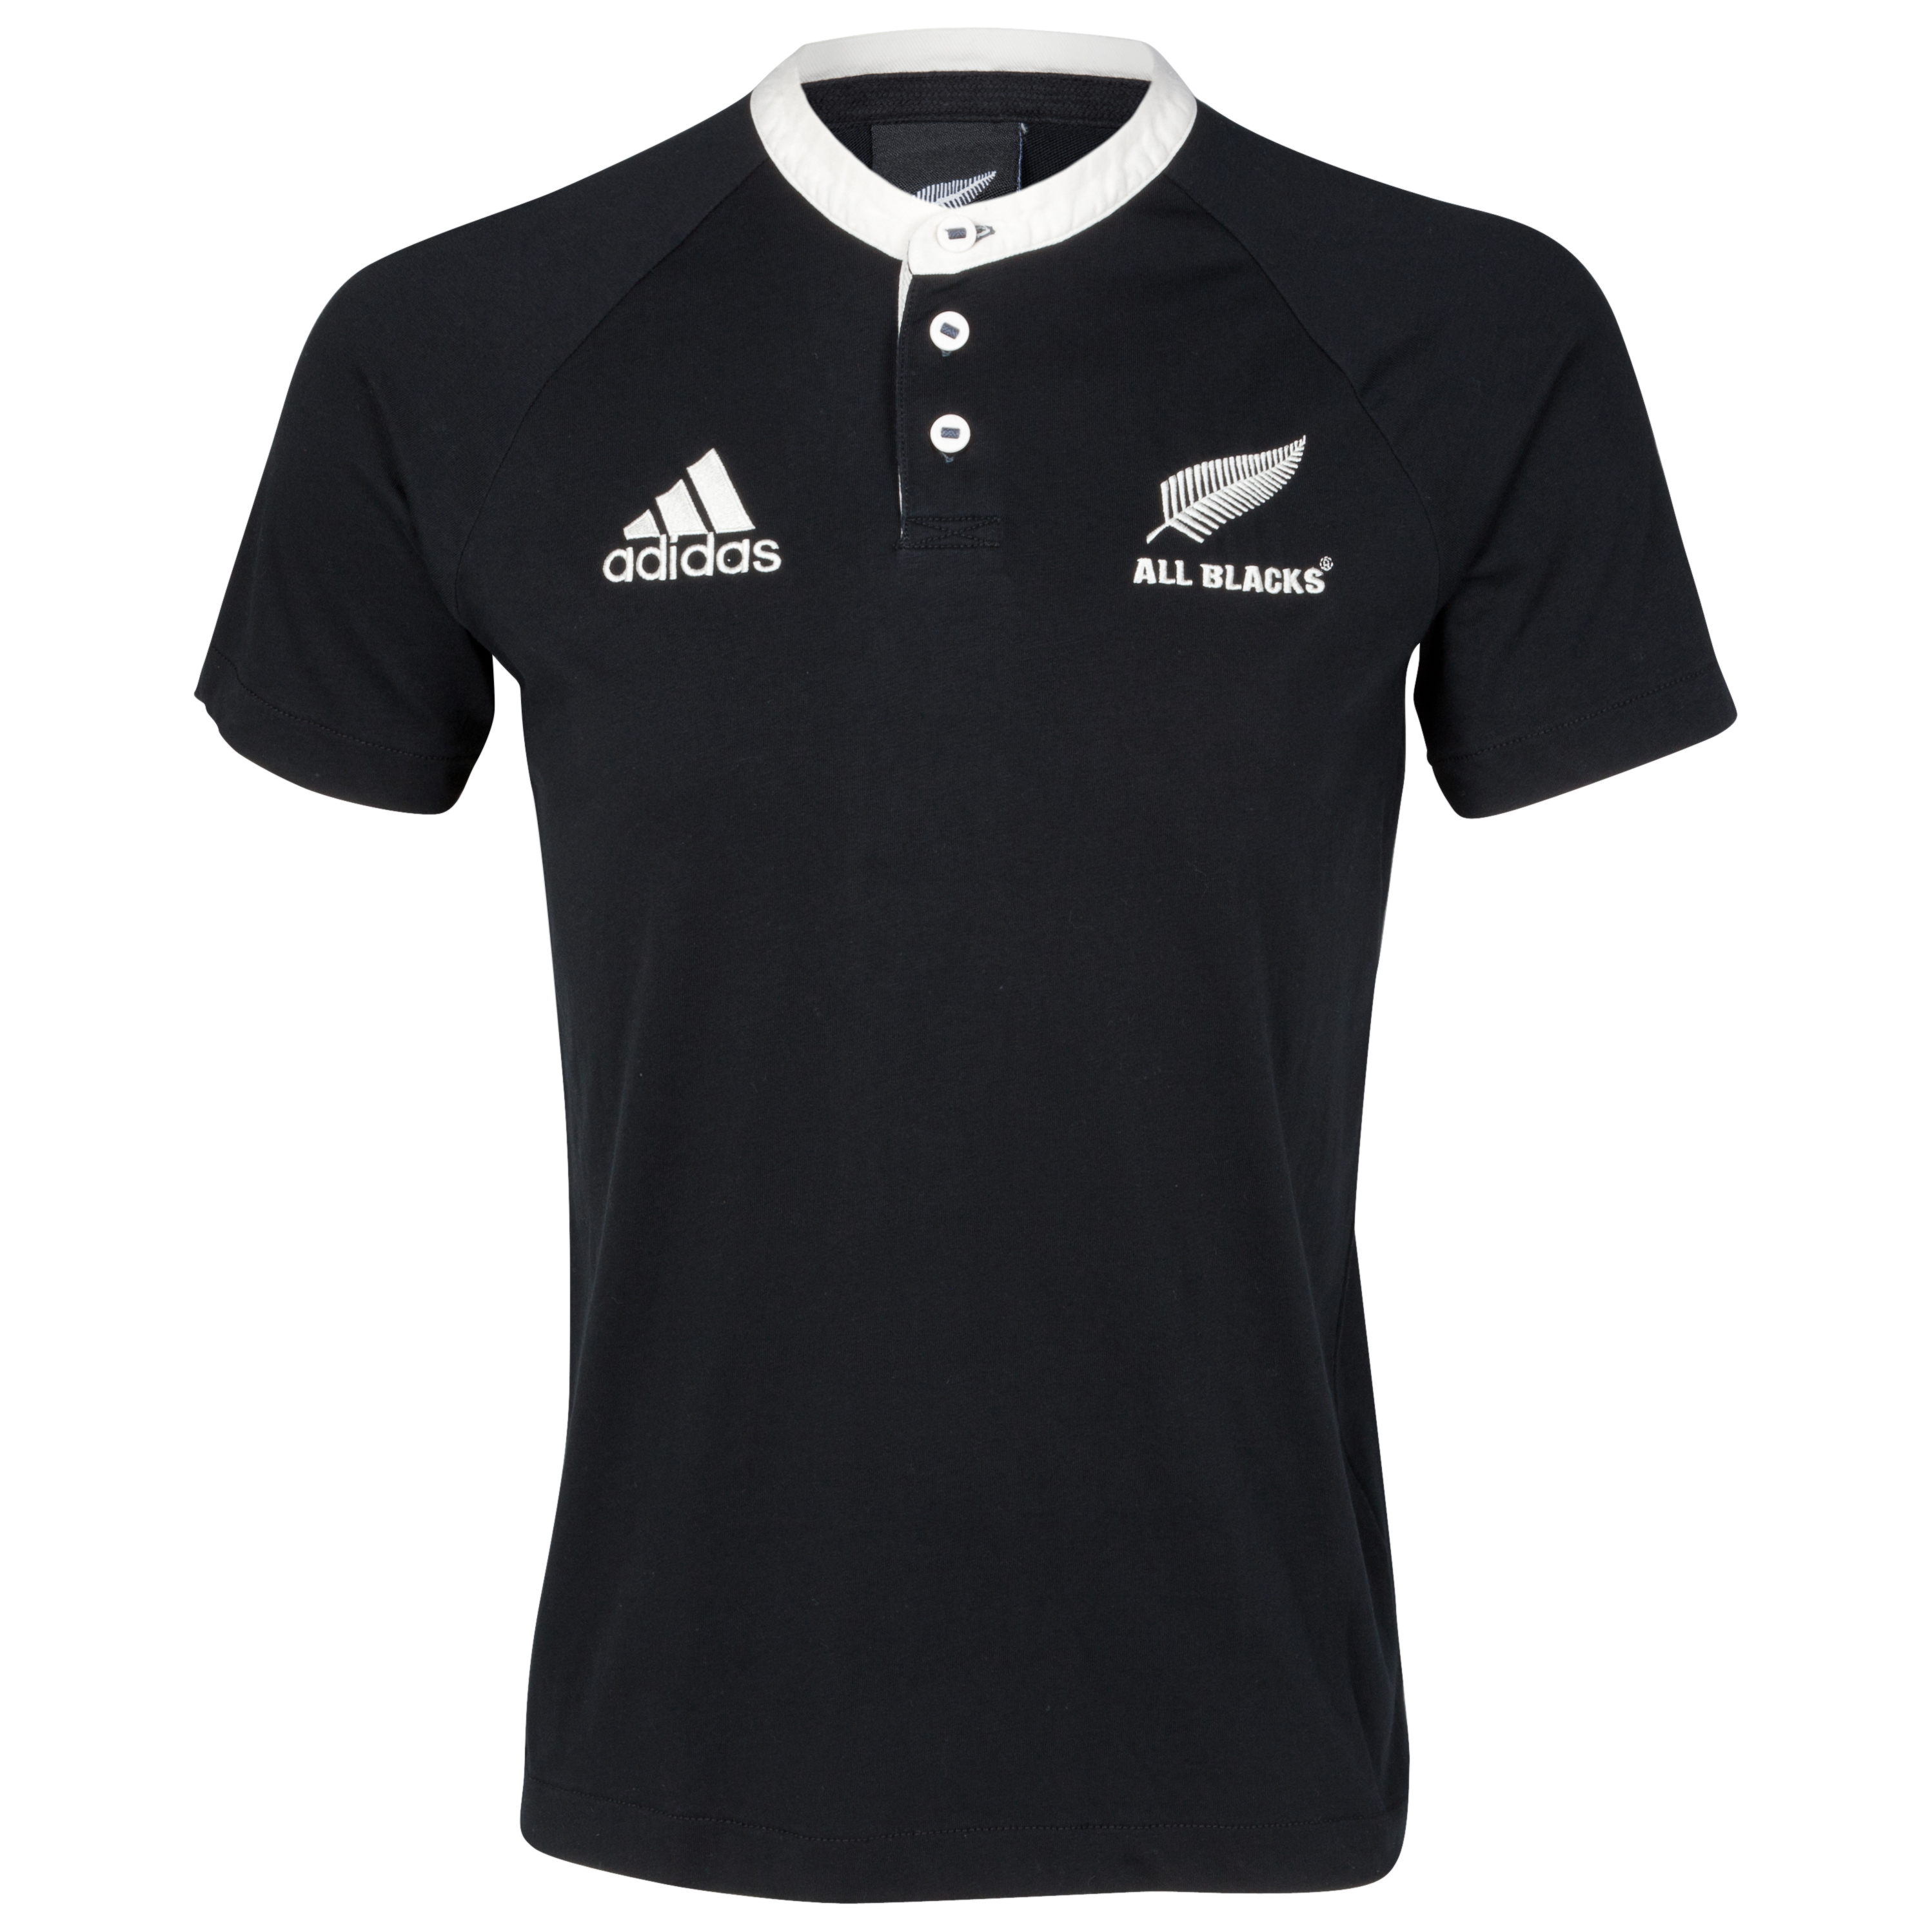 All Blacks Short Sleeve Supporters Shirt 2012/13